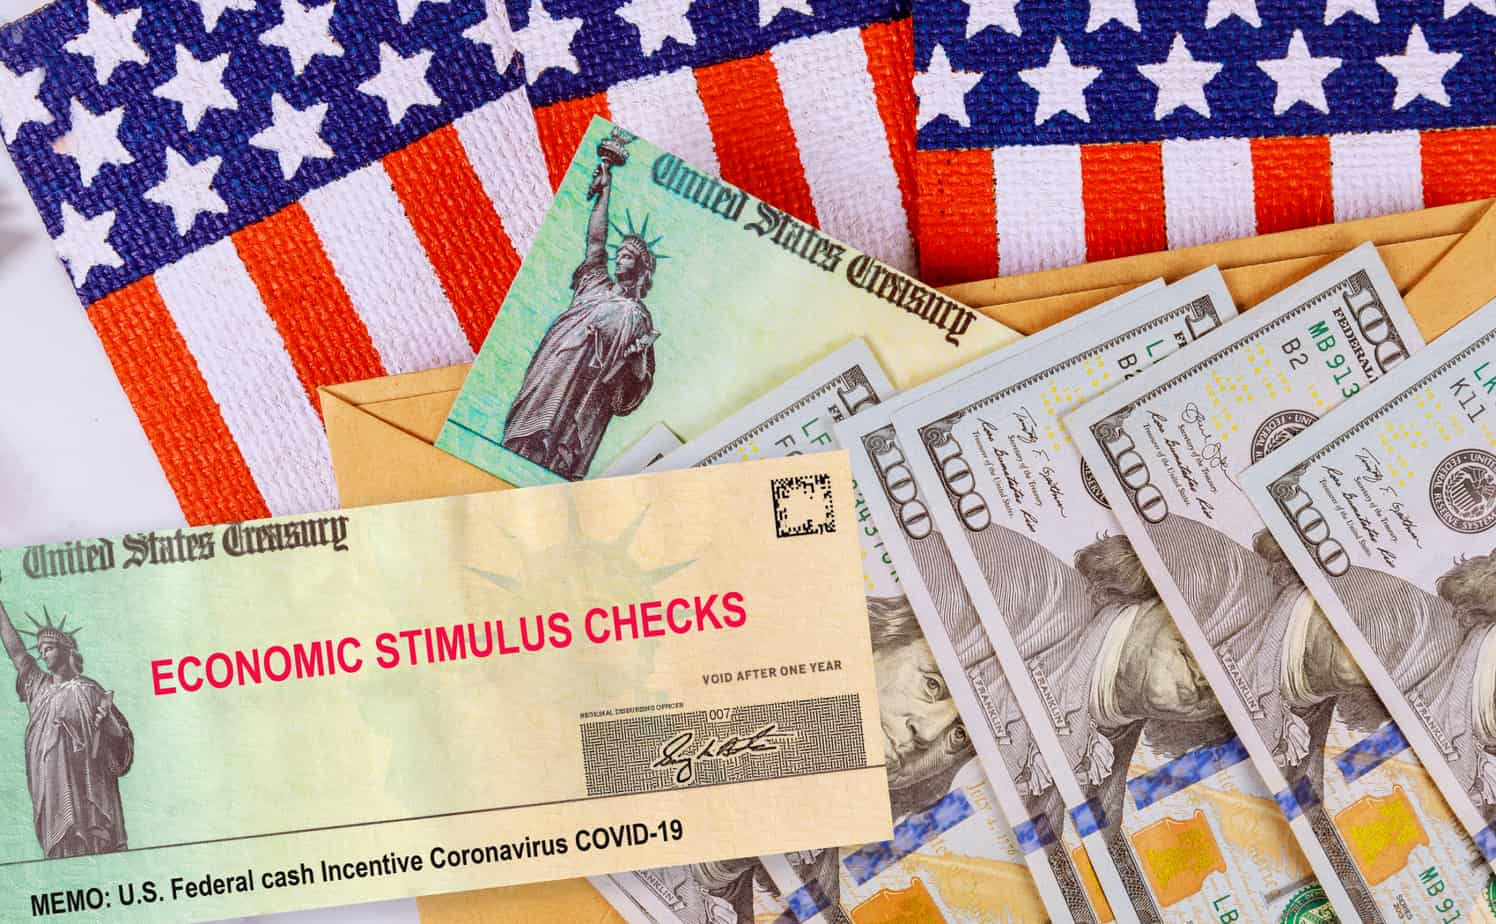 Stimulus Financial A Bill Individual Checks From Government Us 100 Dollar Bills Currency American Flag Global Pandemic Covid 19 178005180